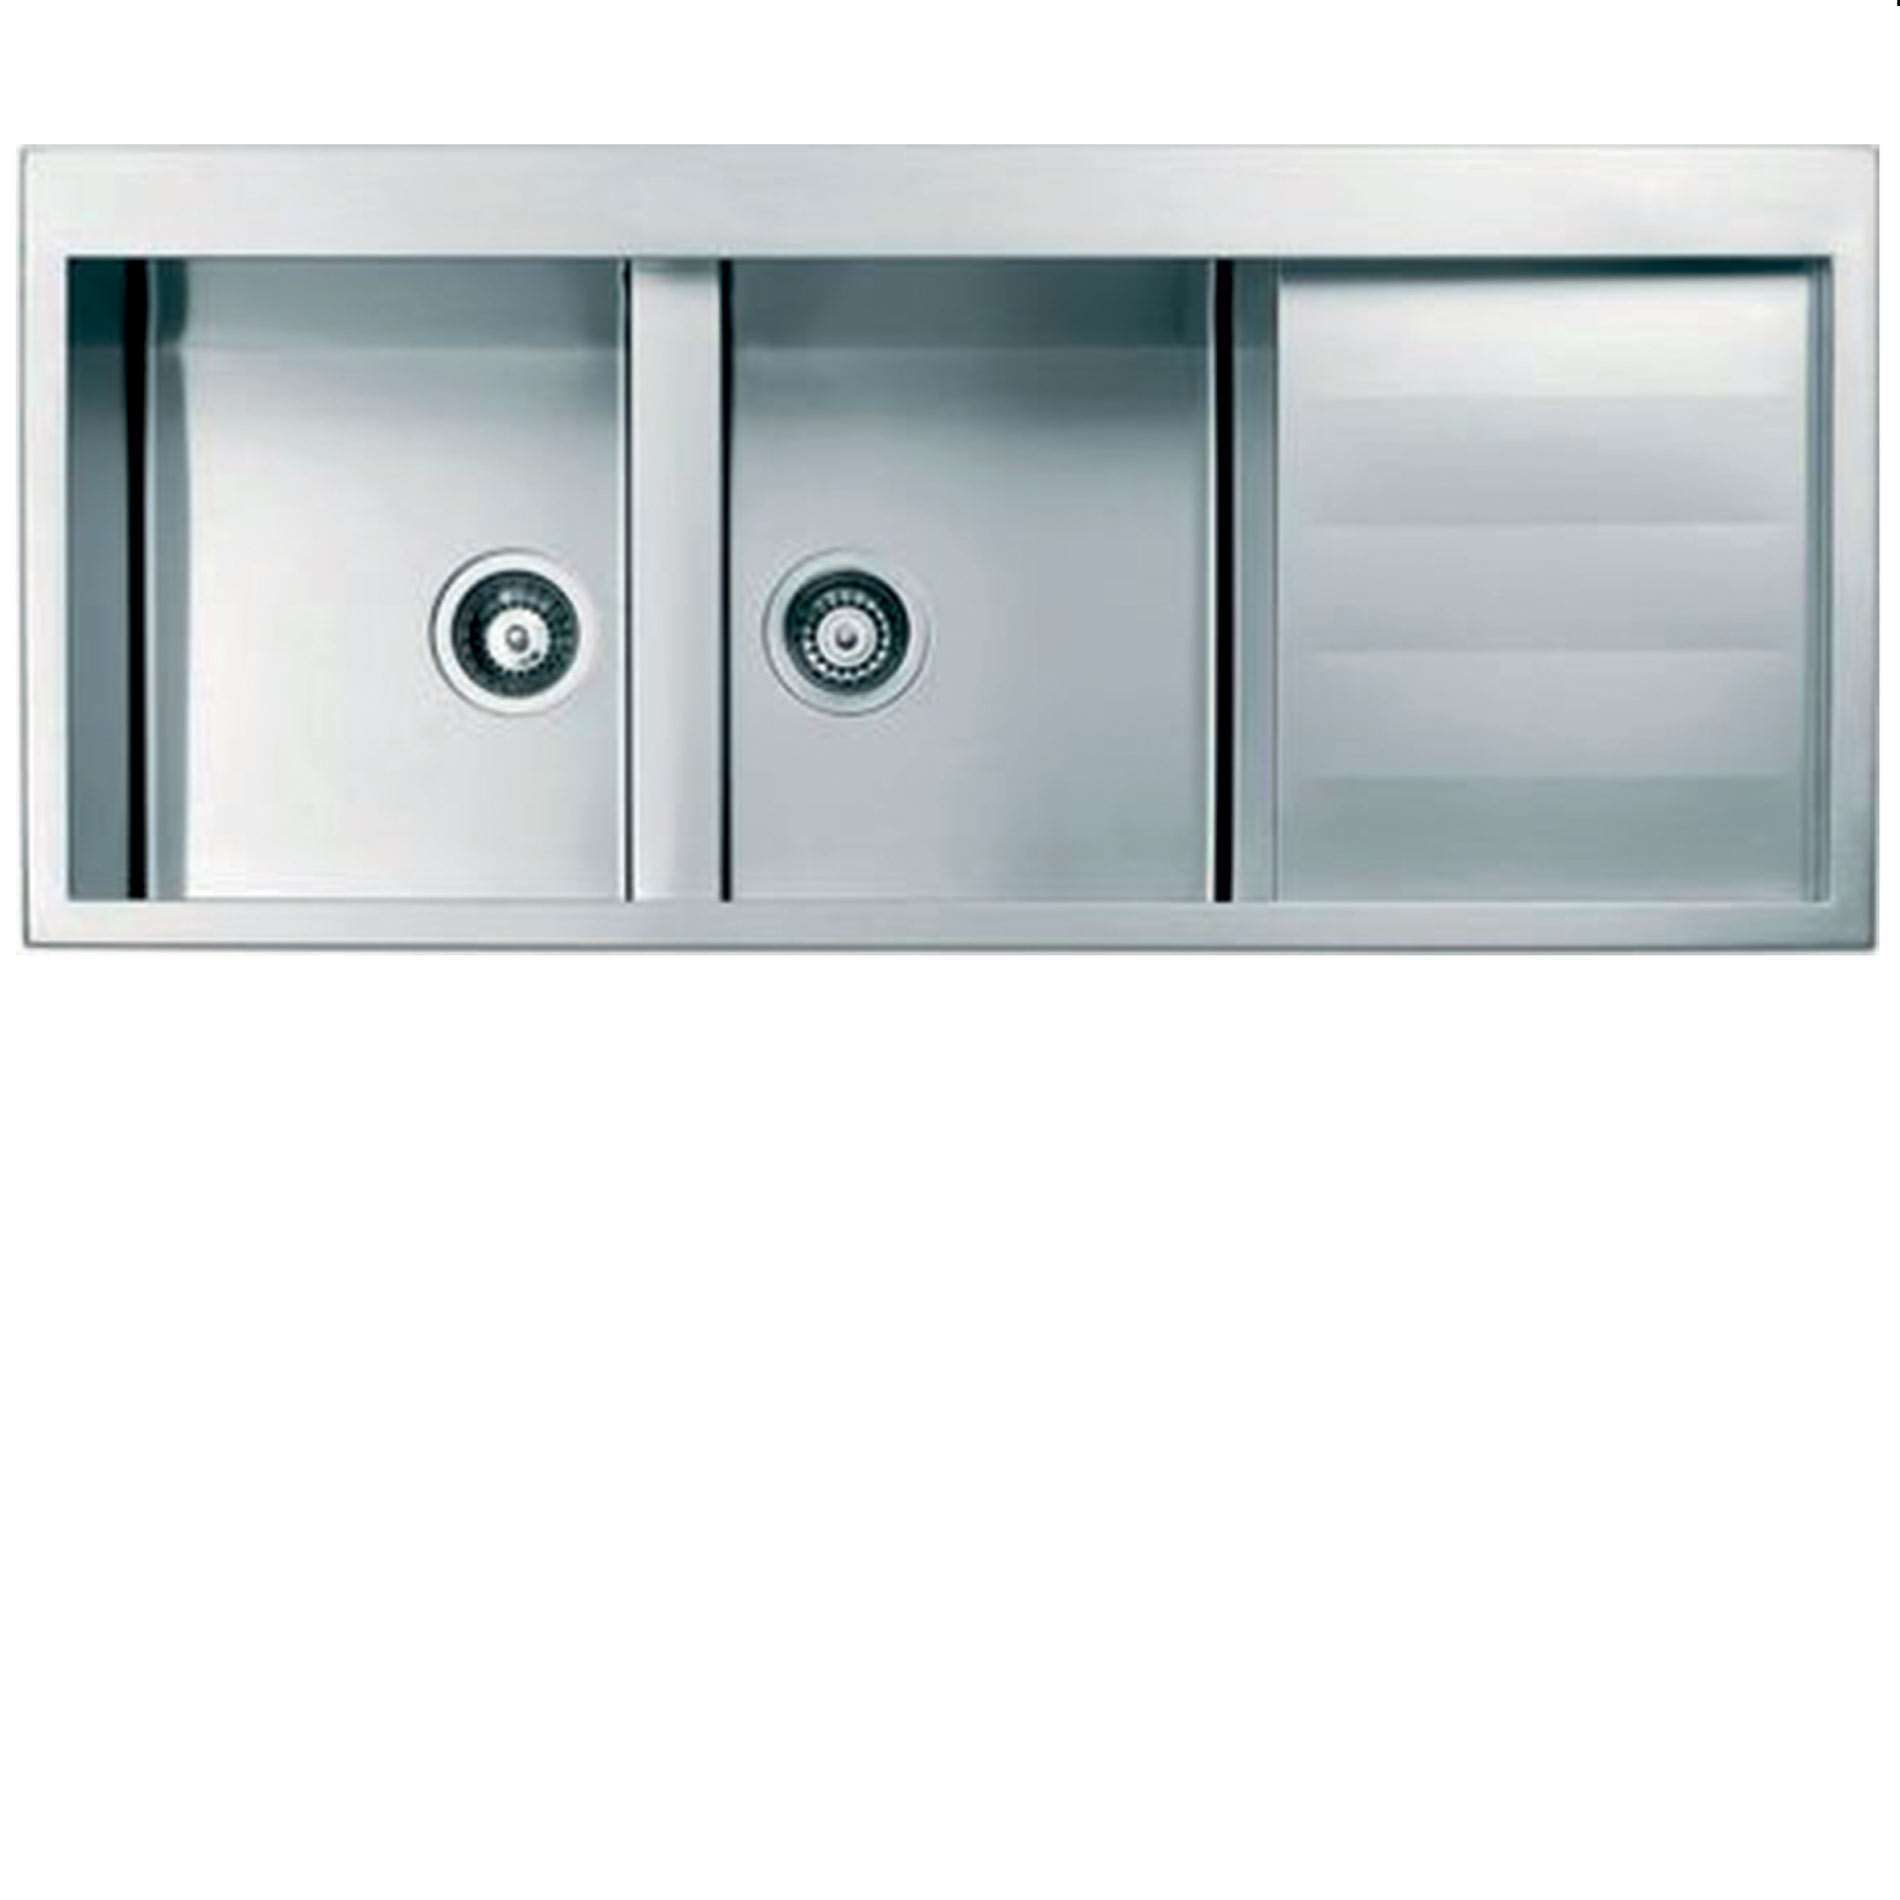 Picture of Spirito Double Bowl Stainless Steel Sink